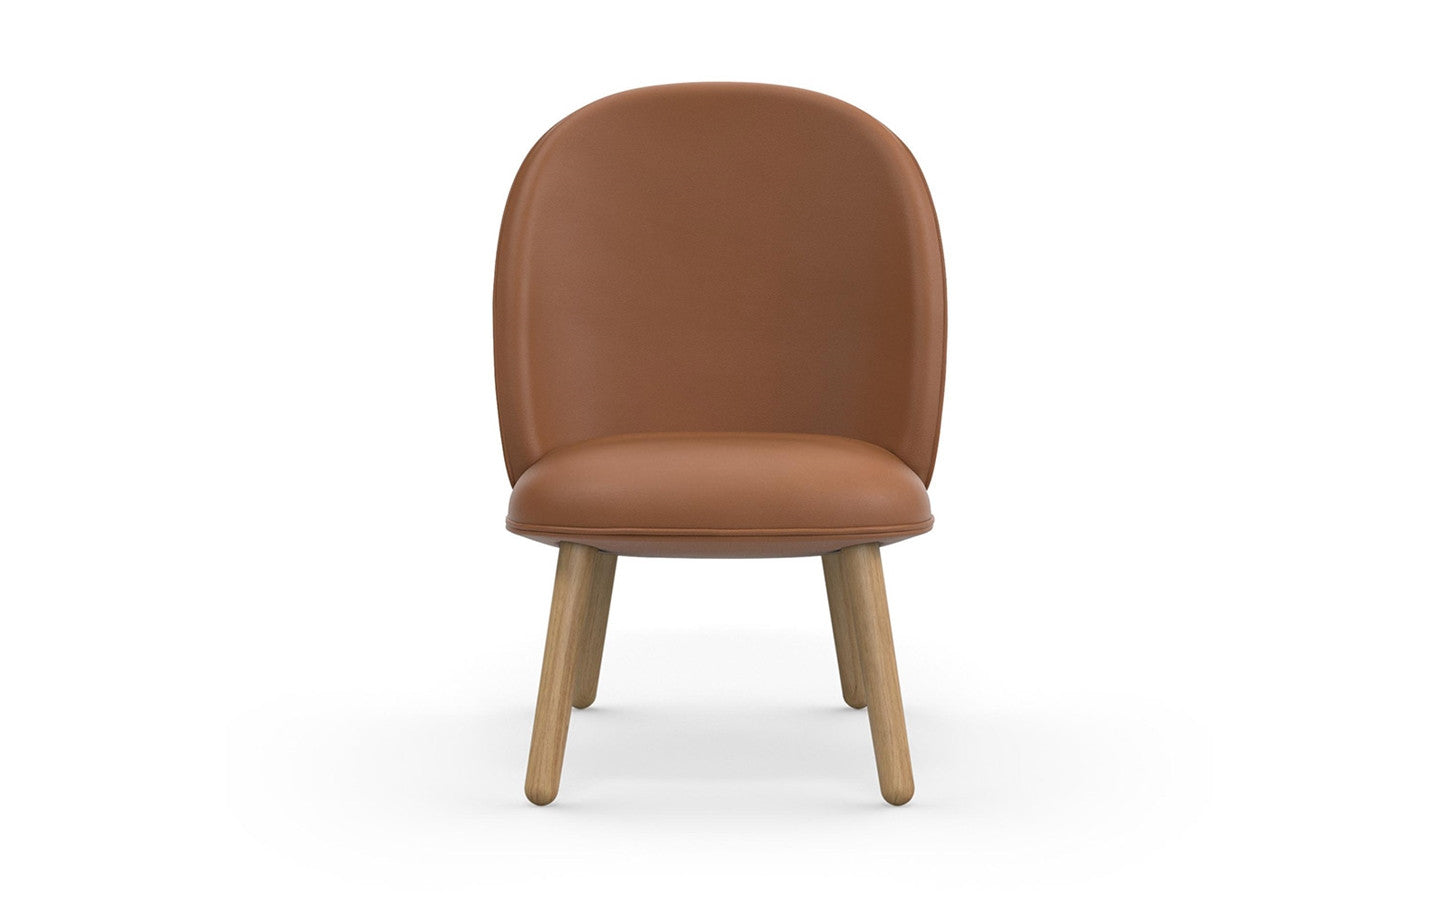 Ace Lounge Chair Tango Leather - Brandy fra Normann Copenhagen